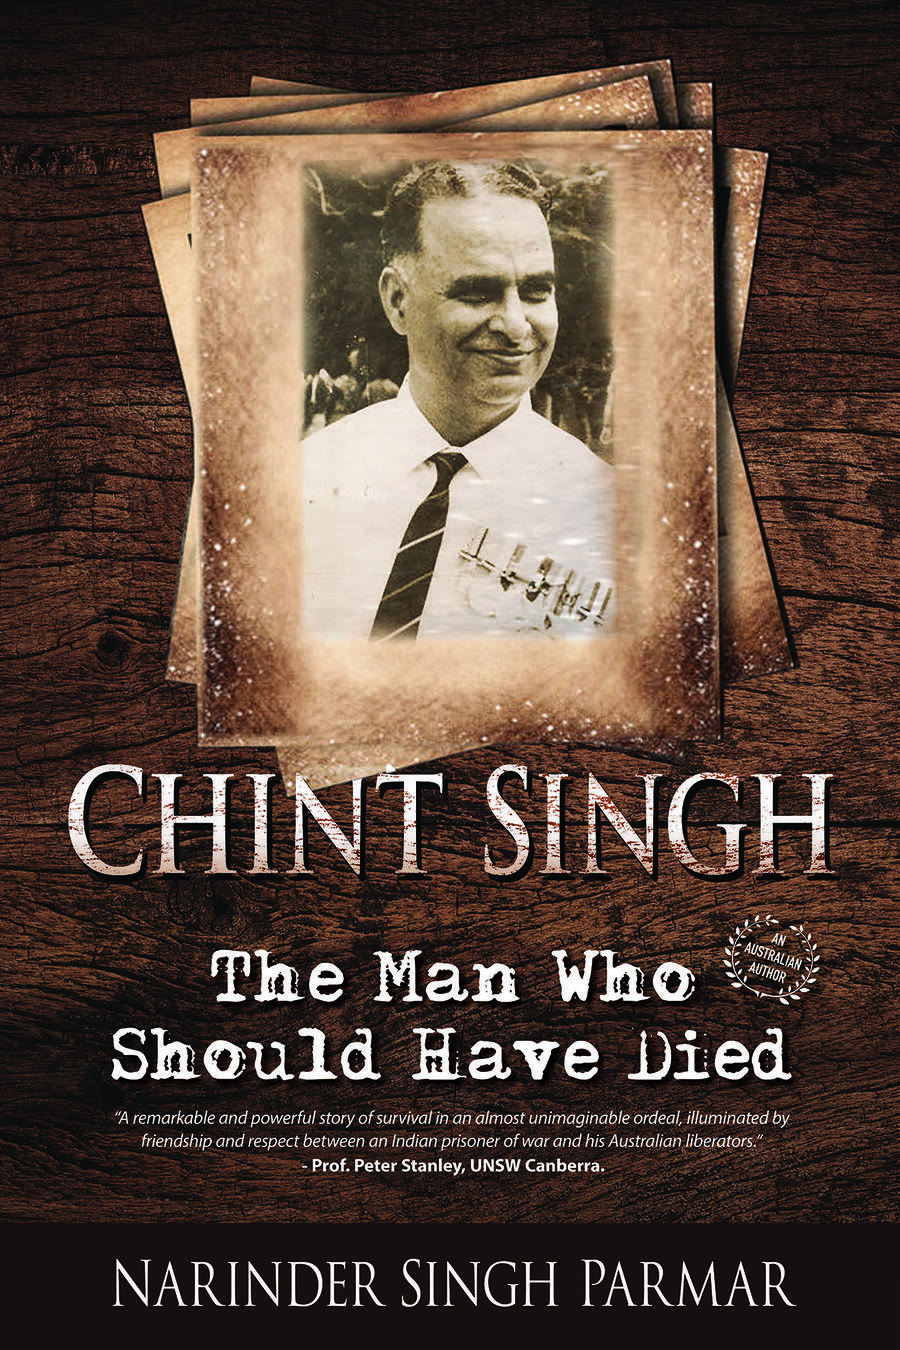 Chint Singh The Man Who Should Have Died